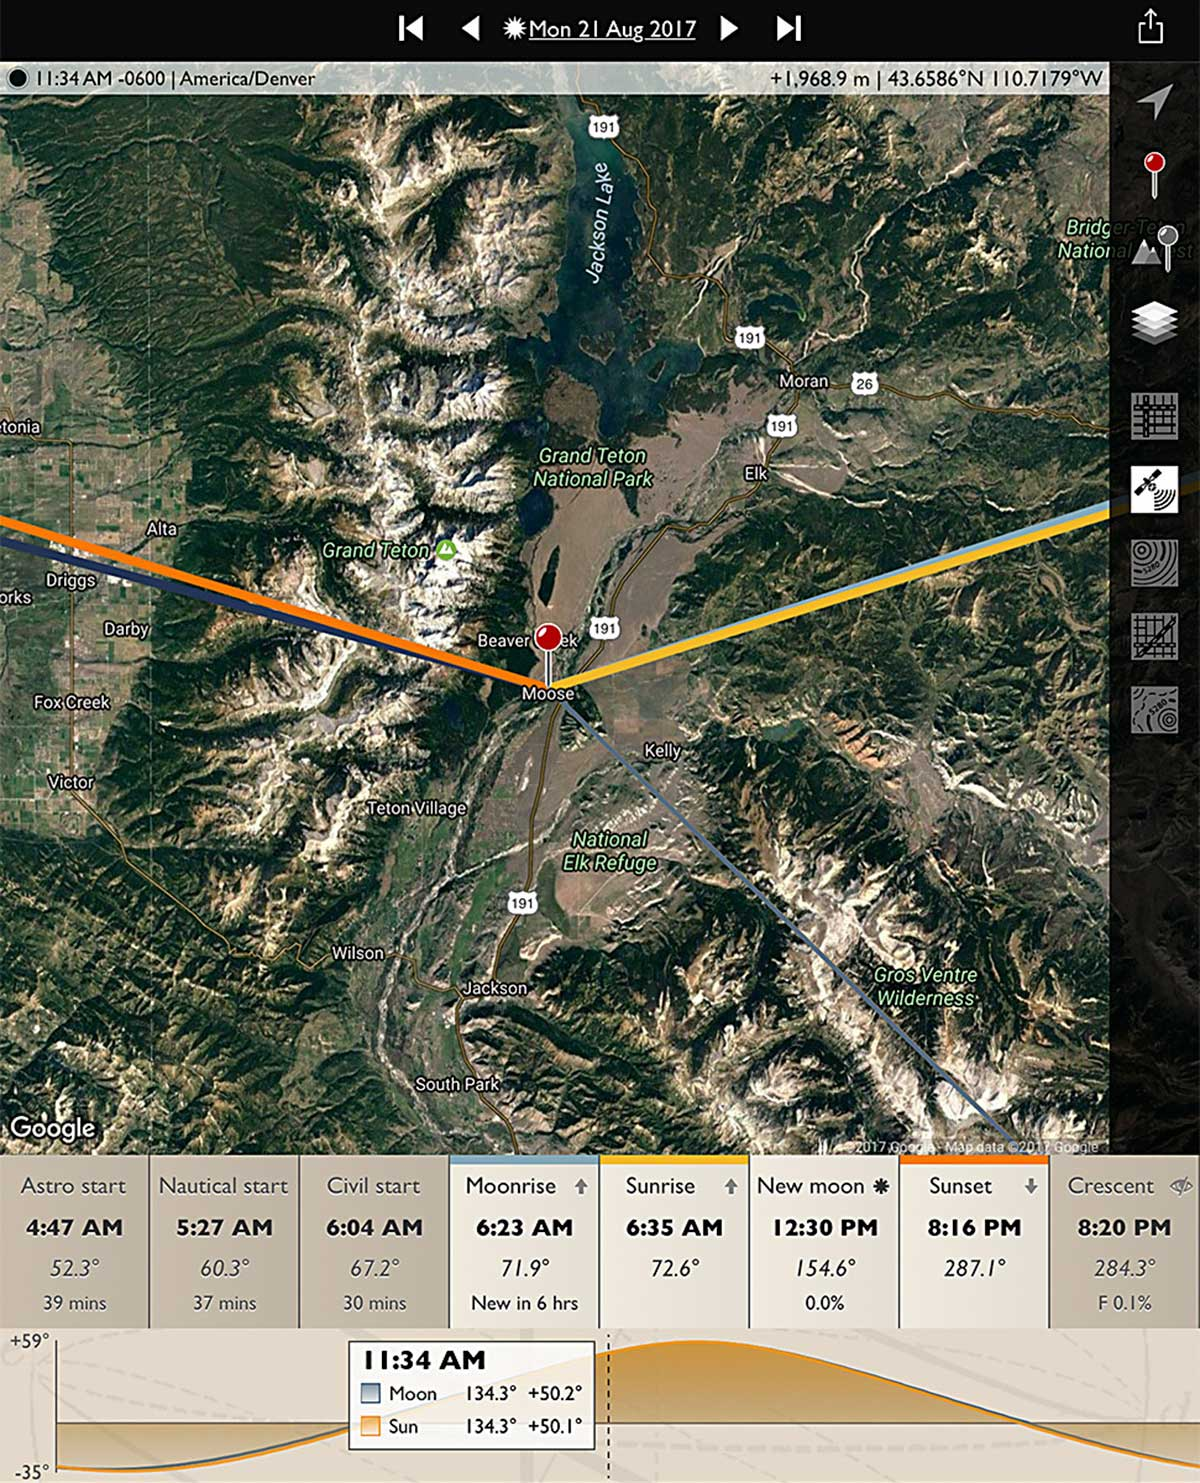 Map of Teton site of eclipse 2017 by Alan Dyer